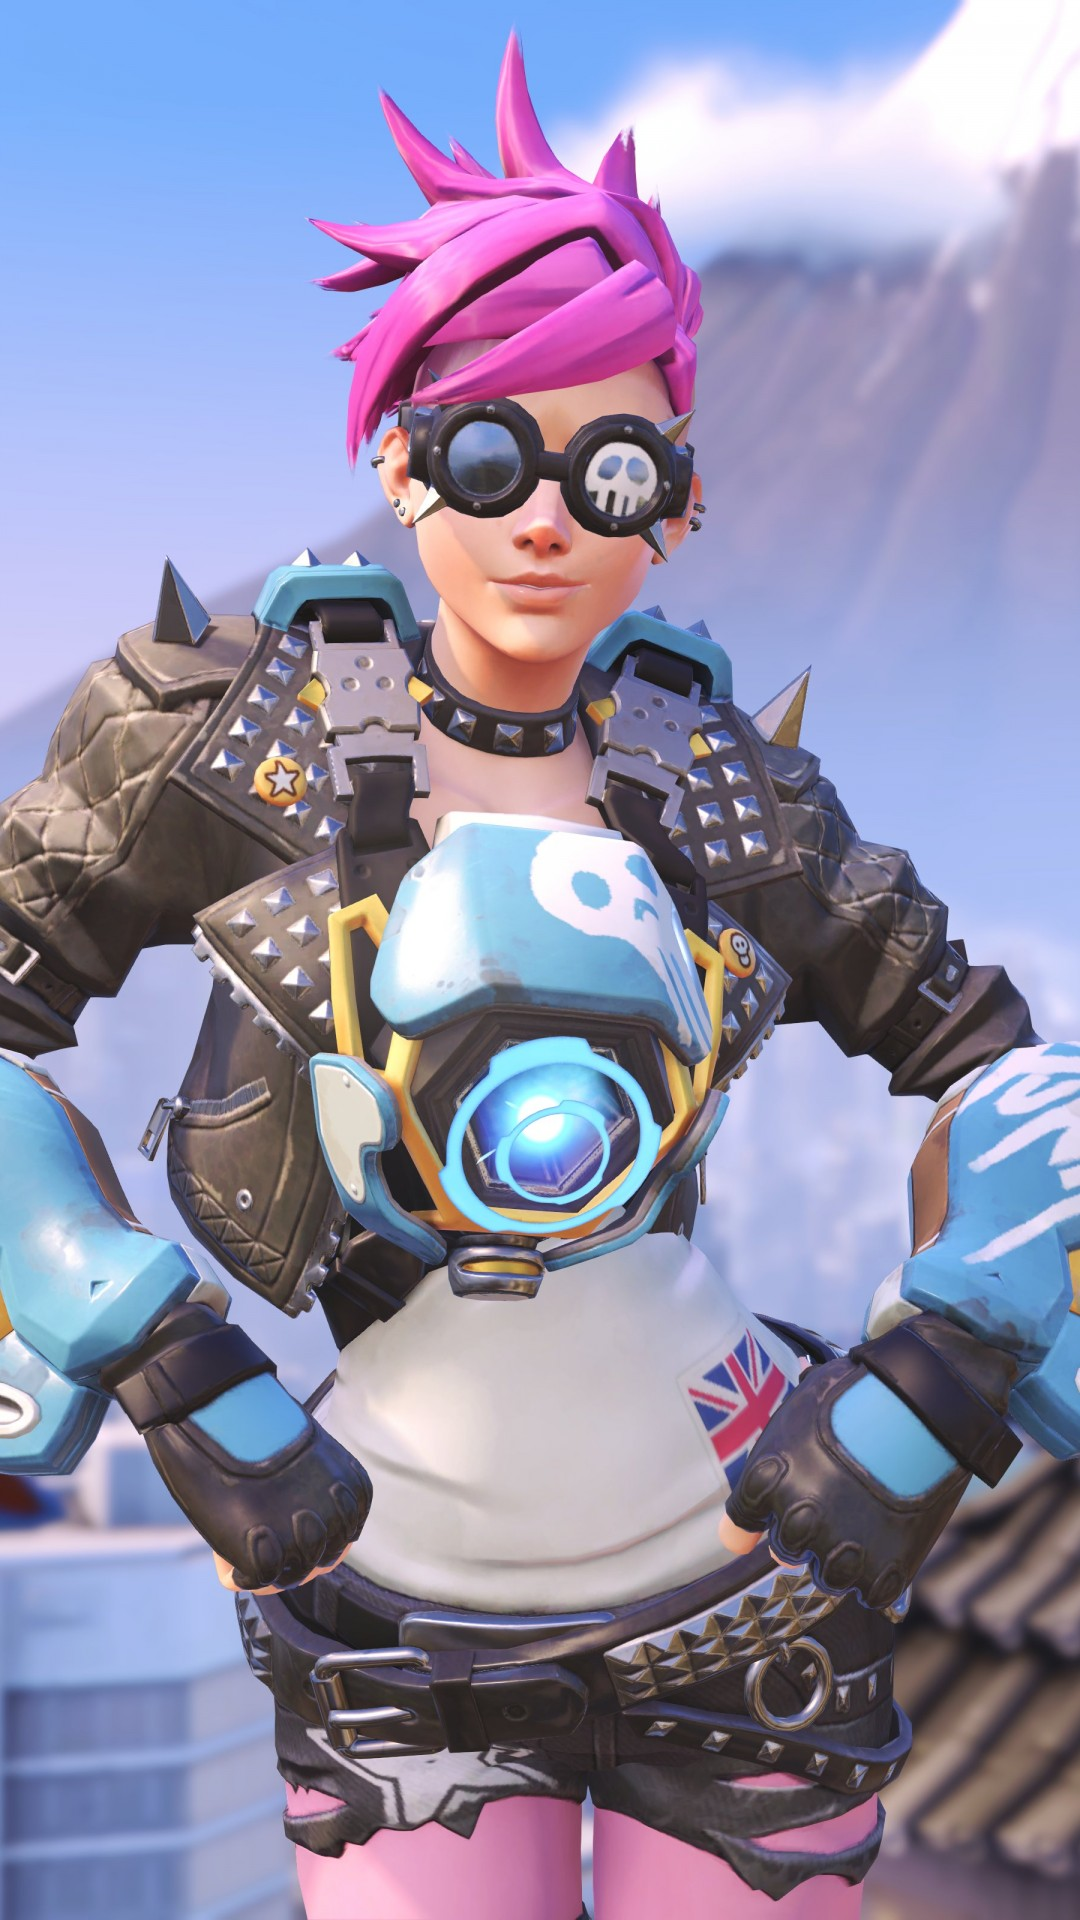 Overwatch Girls Wallpaper 1920x1080 Wallpaper Zarya 8k 4k Overwatch Games 9480